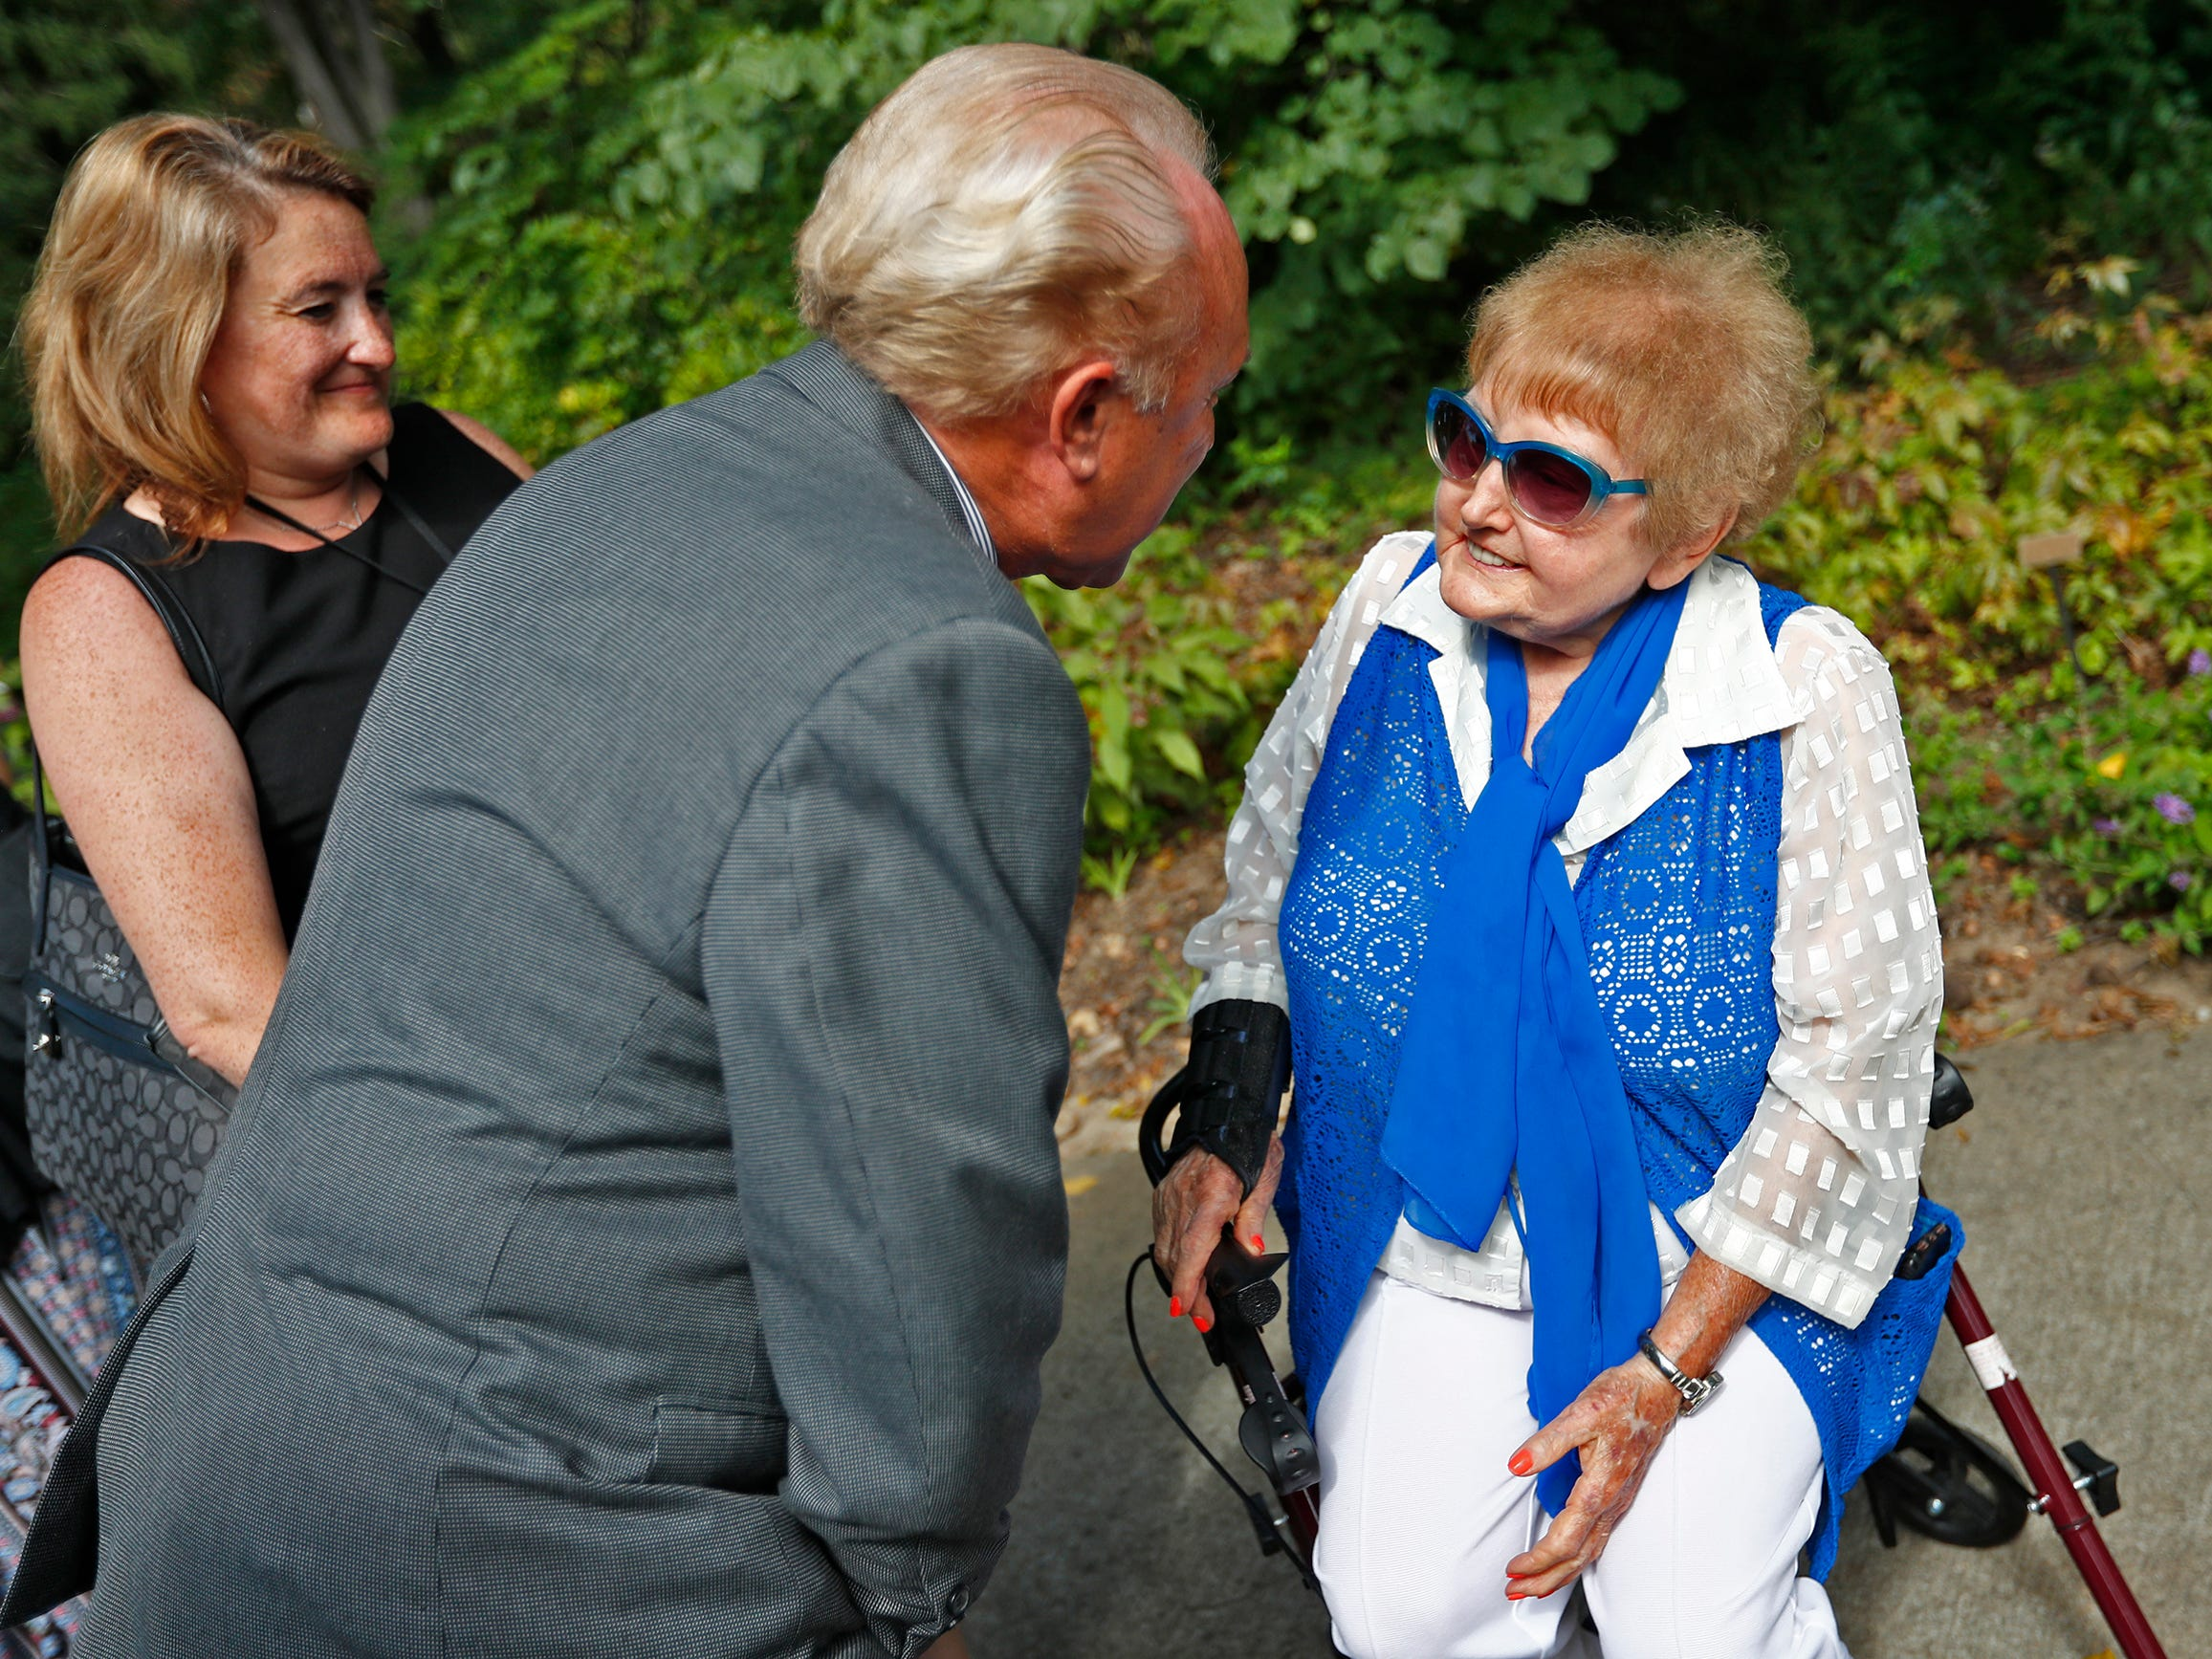 """Holocaust survivor Eva Kor, right, speaks with Heartland Film President Craig Prater during the planting of the Eva Kor Peace Garden at Newfields, Monday, Sept. 17, 2018.  Students viewed the documentary """"Eva,"""" about Kor, and then helped in the planting of the Peace Garden.  Kor also spoke with the students, asking them to think of one thing to make the world better."""